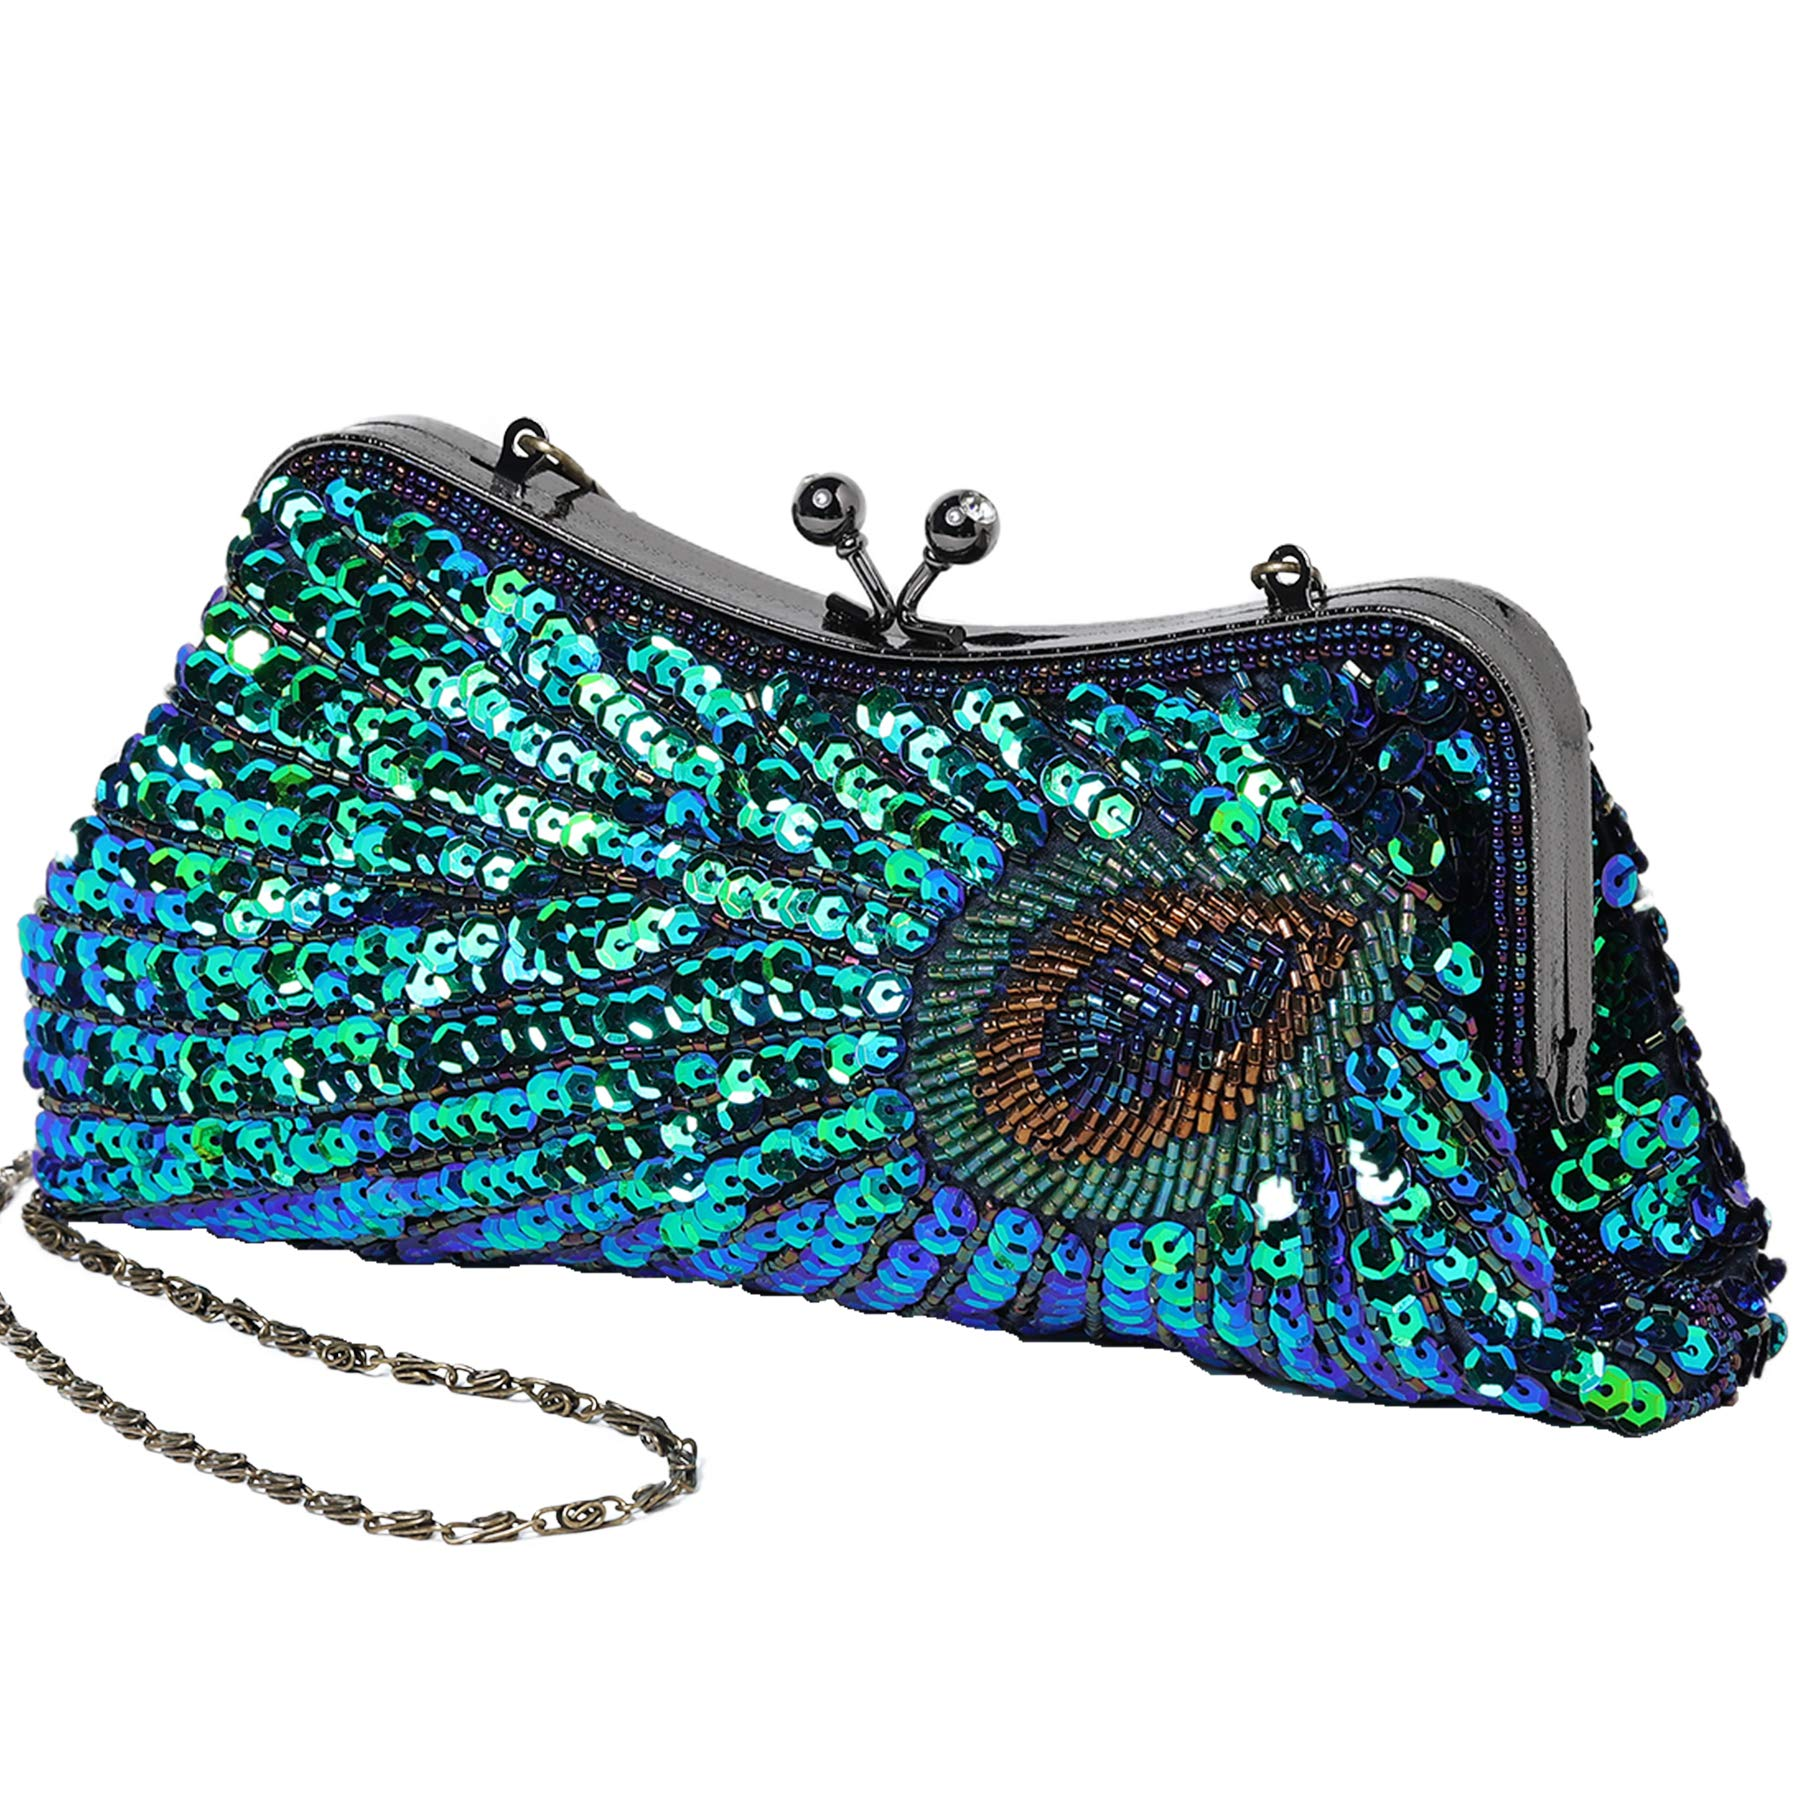 BABEYOND 1920s Flapper Peacock Clutch Gatsby Sequined Handbag Roaring 20s Evening Clutch Beaded Bag 1920s Gatsby Costume Accessories (Style 1) by BABEYOND